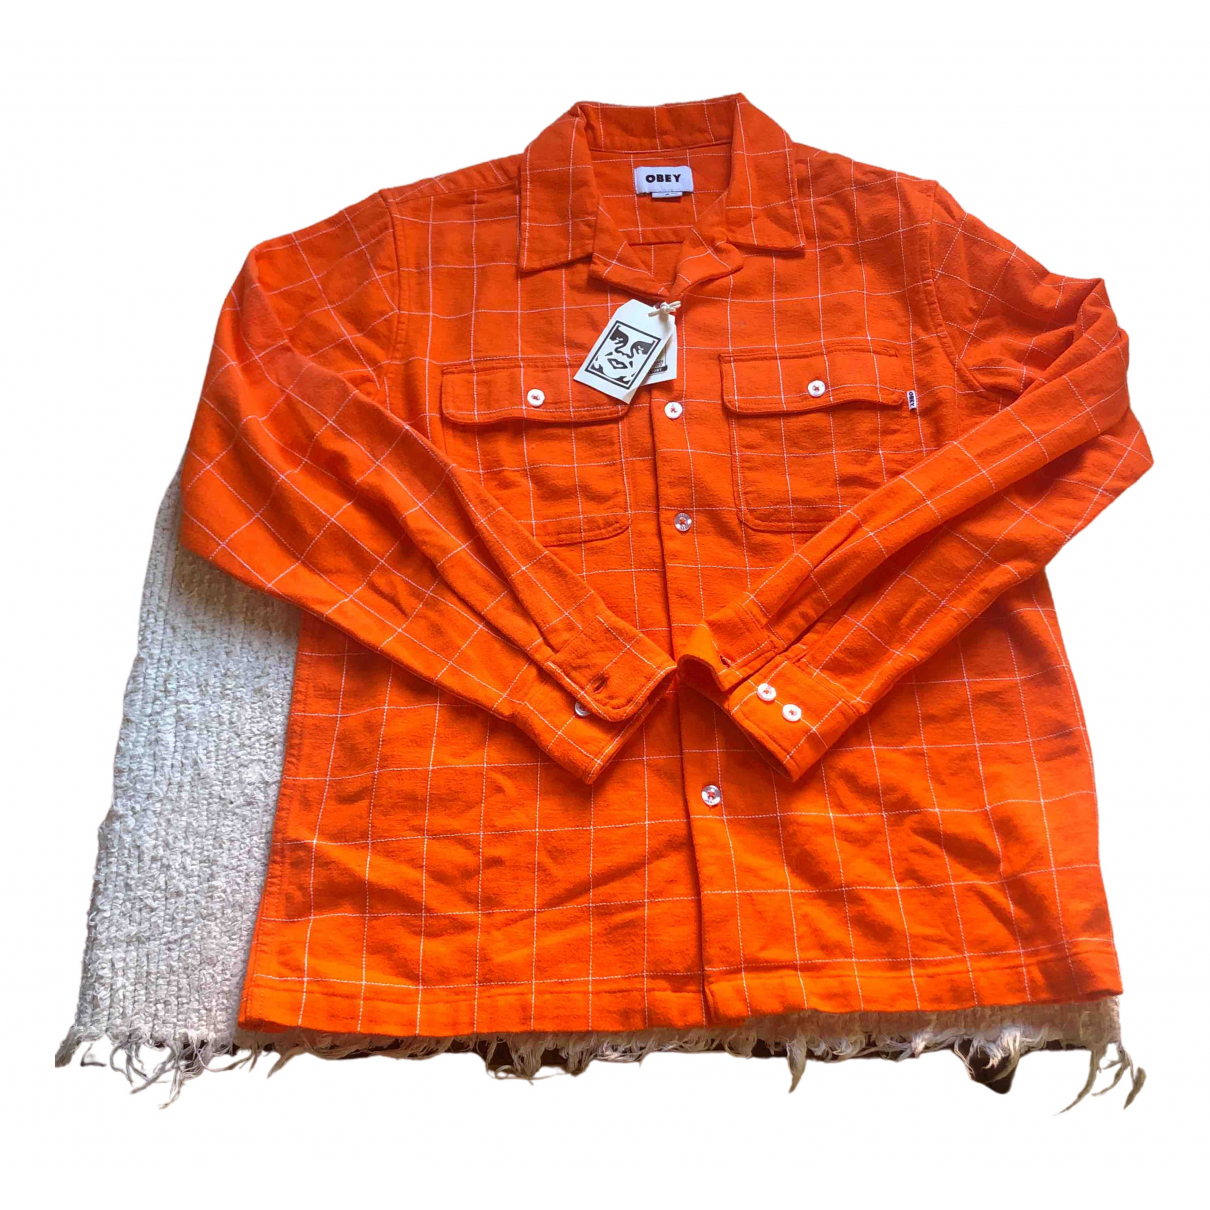 Obey - Chemises   pour homme en coton - orange